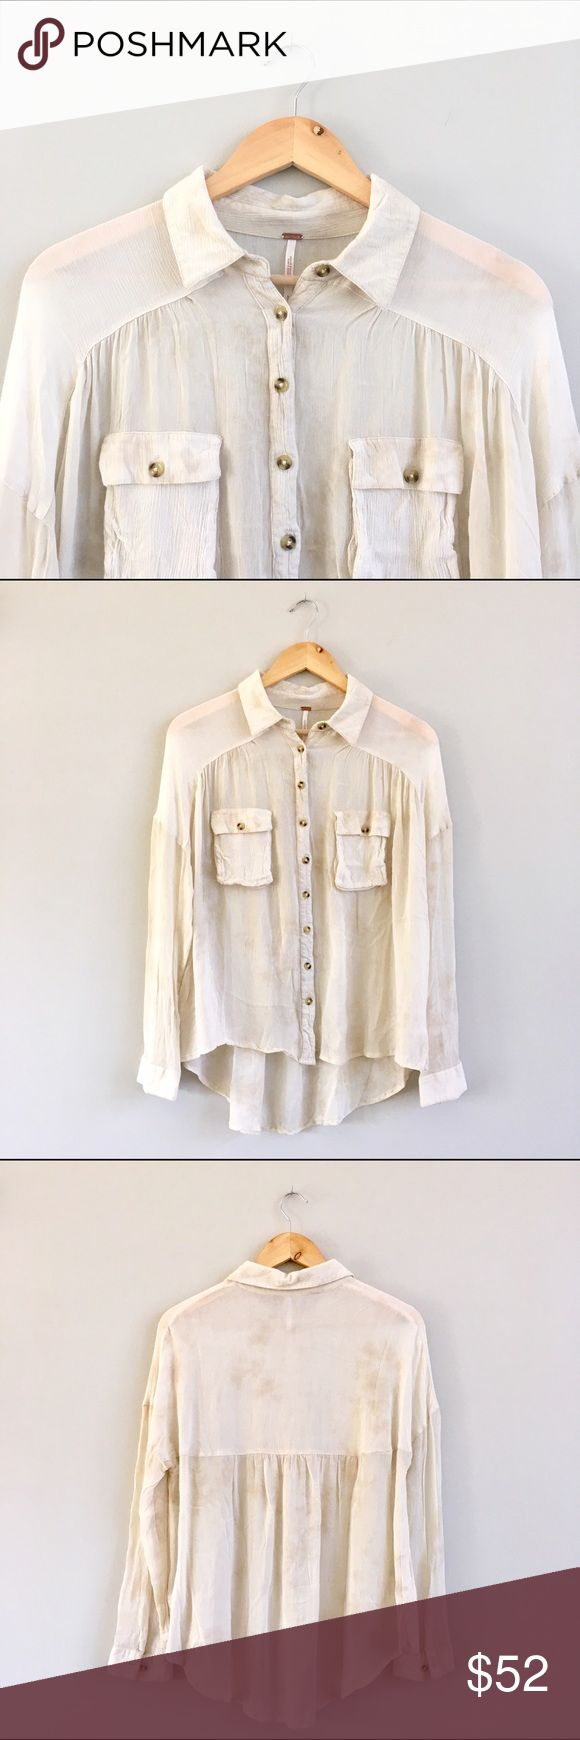 Free People HiLo Cream Field Shirt A great twist on a classic closet staple, this Free People semi-sheer button down has a flowy, feminine back and all over subtle brown pattern. Bust: 22in, shoulder to hem: 24in, 100% rayon. Gently worn, excellent condition. Free People Tops Button Down Shirts